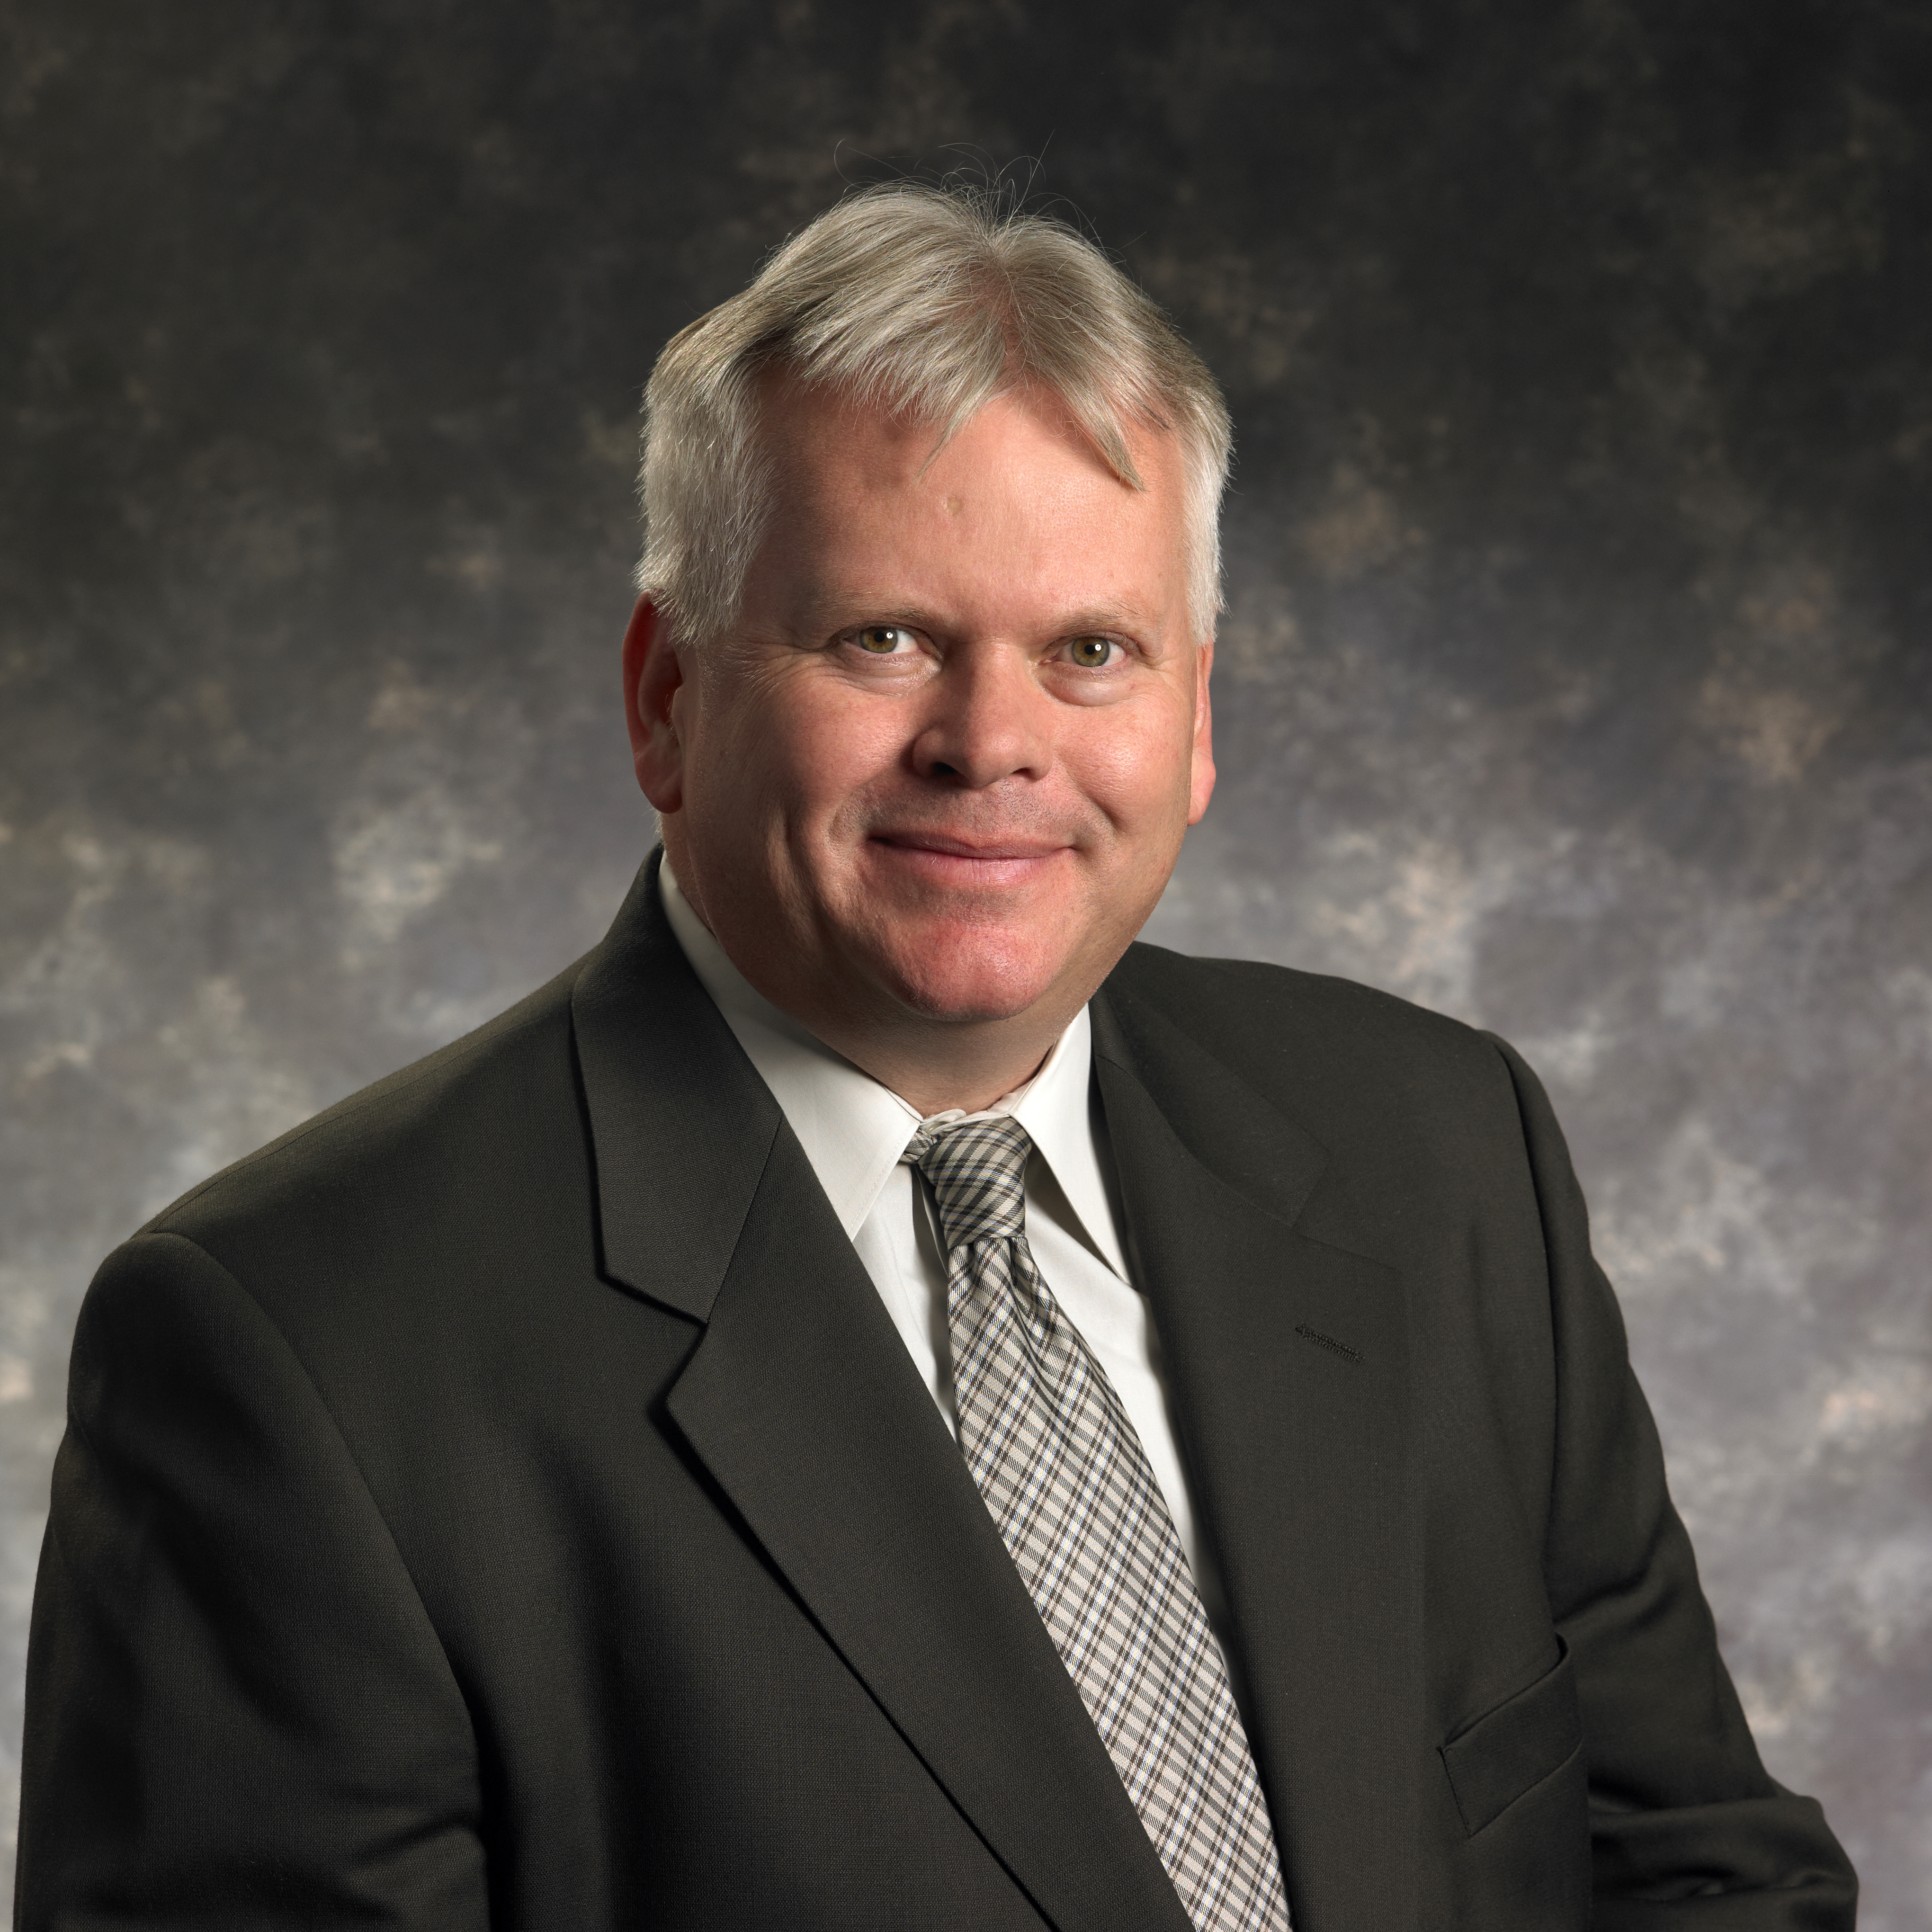 NJCPA Names Harry P. Wills III, CPA, CGMA, of Bowman & Company President for 2021/22